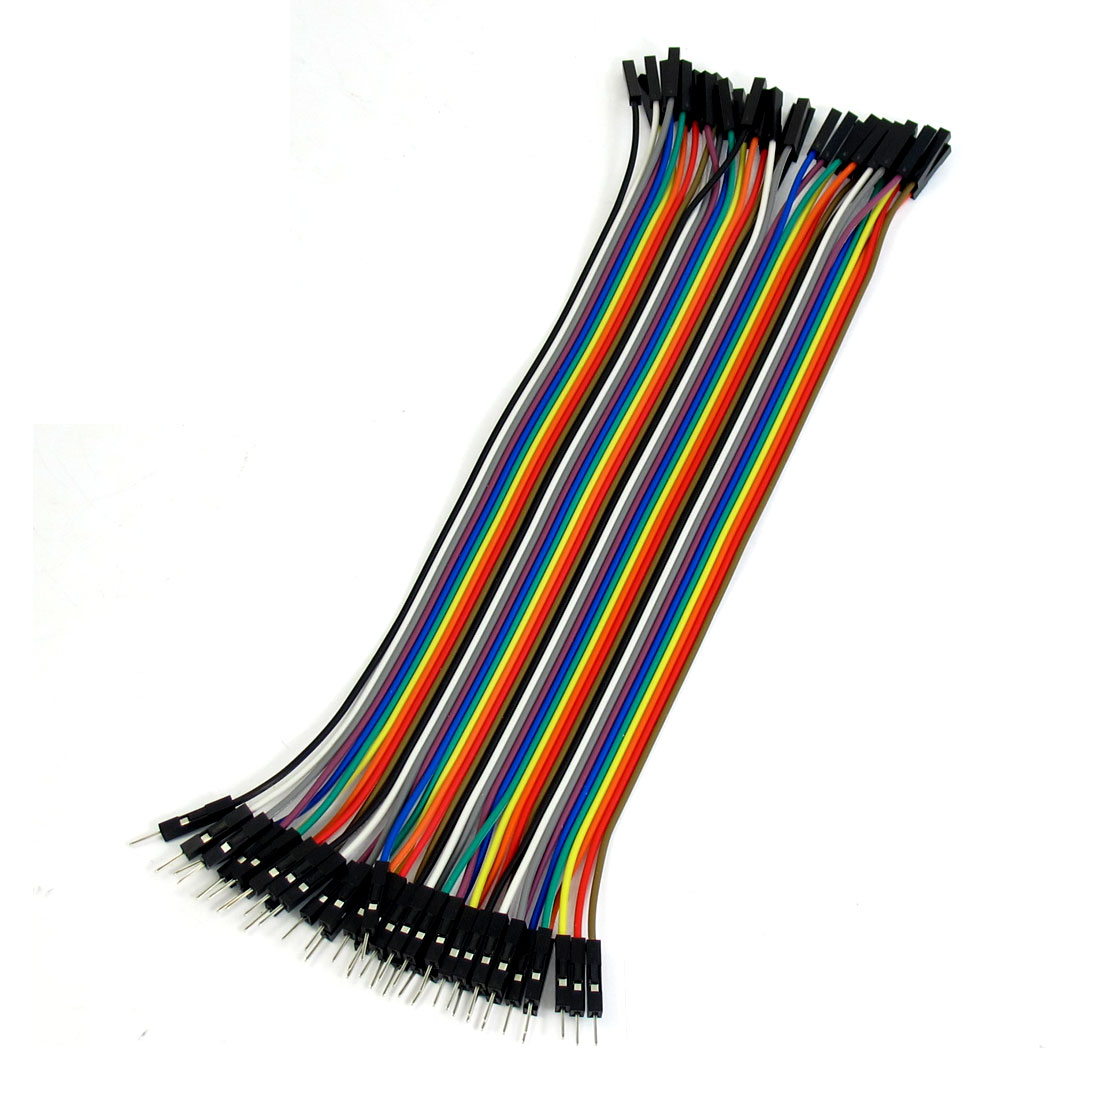 40 Pcs 1 Pin Male to Female Jumper Cable Wires 20cm Long